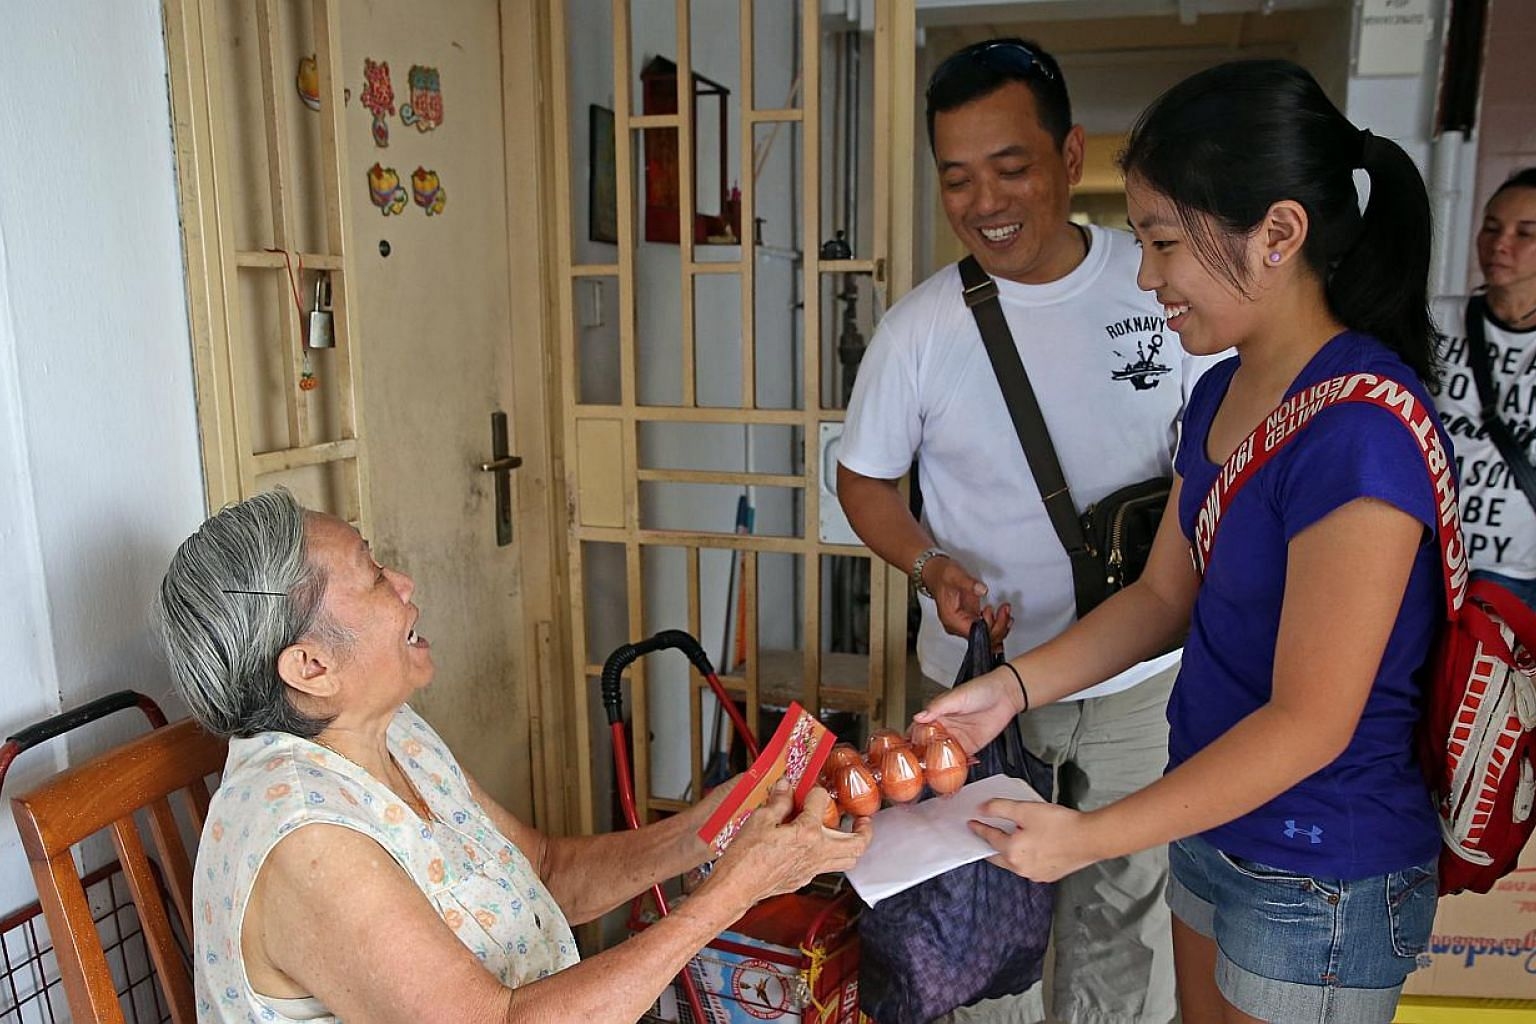 Mr Mervyn Chua, 48, and his daughter Ryen, 12, distributing food to Madam Liow Mee Yin, 75, as well as other elderly folk living alone in Jalan Kukoh. The Chuas are members of Friends in Charity, an informal group of volunteers who give food and cash